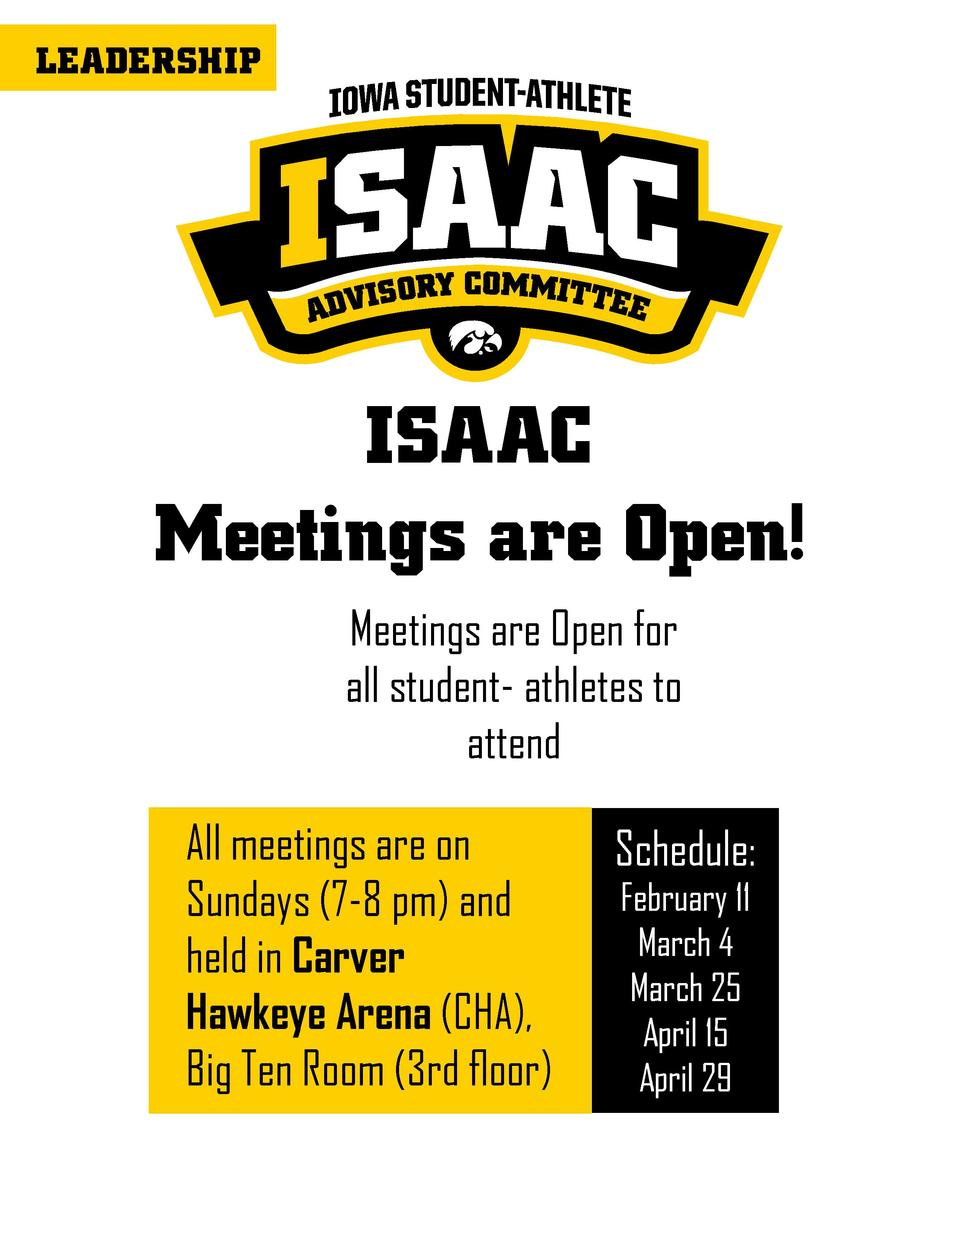 LEADERSHIP  ISAAC Meetings are Open  Meetings are Open for all student- athletes to attend All meetings are on Sundays  7-...